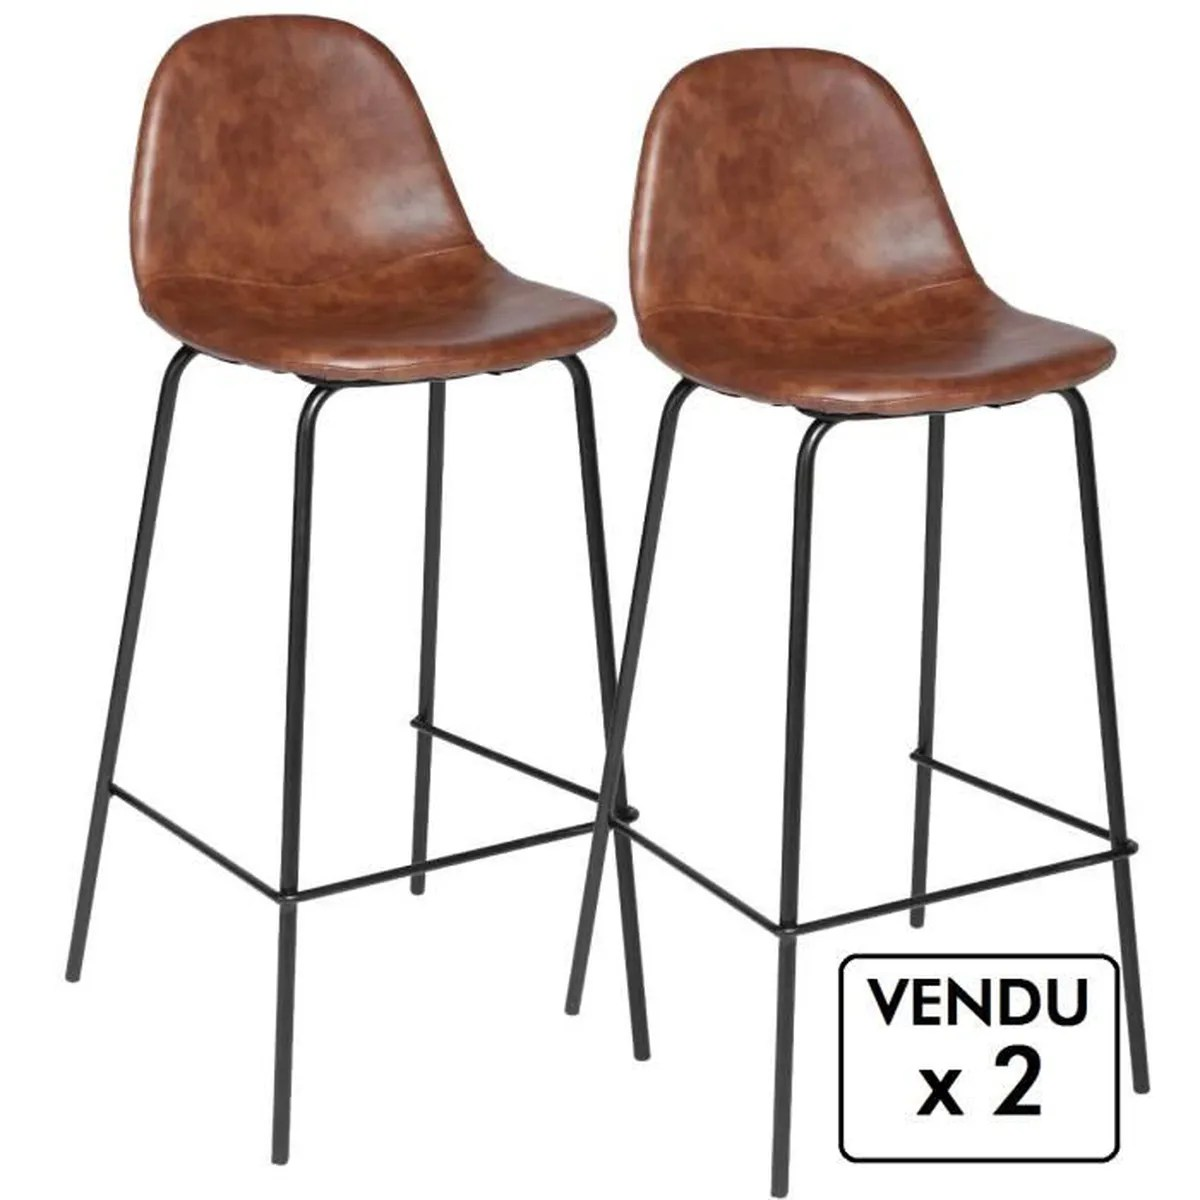 Chaise De Bar Marron Lot De 2 Chaises De Bar Style Industriel Coloris Marron